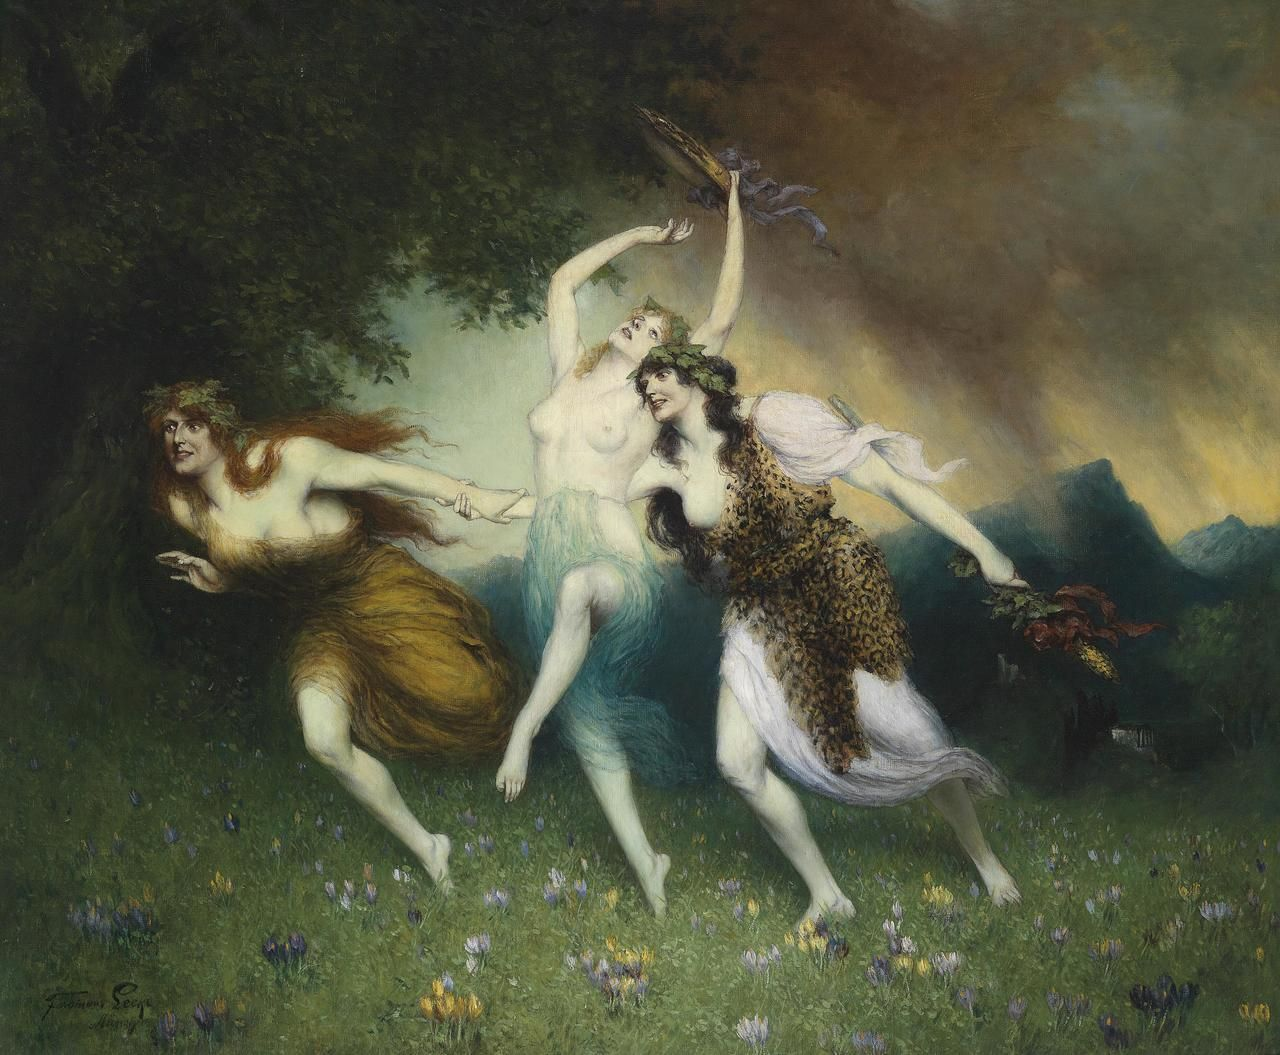 There are the fairlimbed Nymphs o the Woods Look ye Whom kindred Fancies have brought